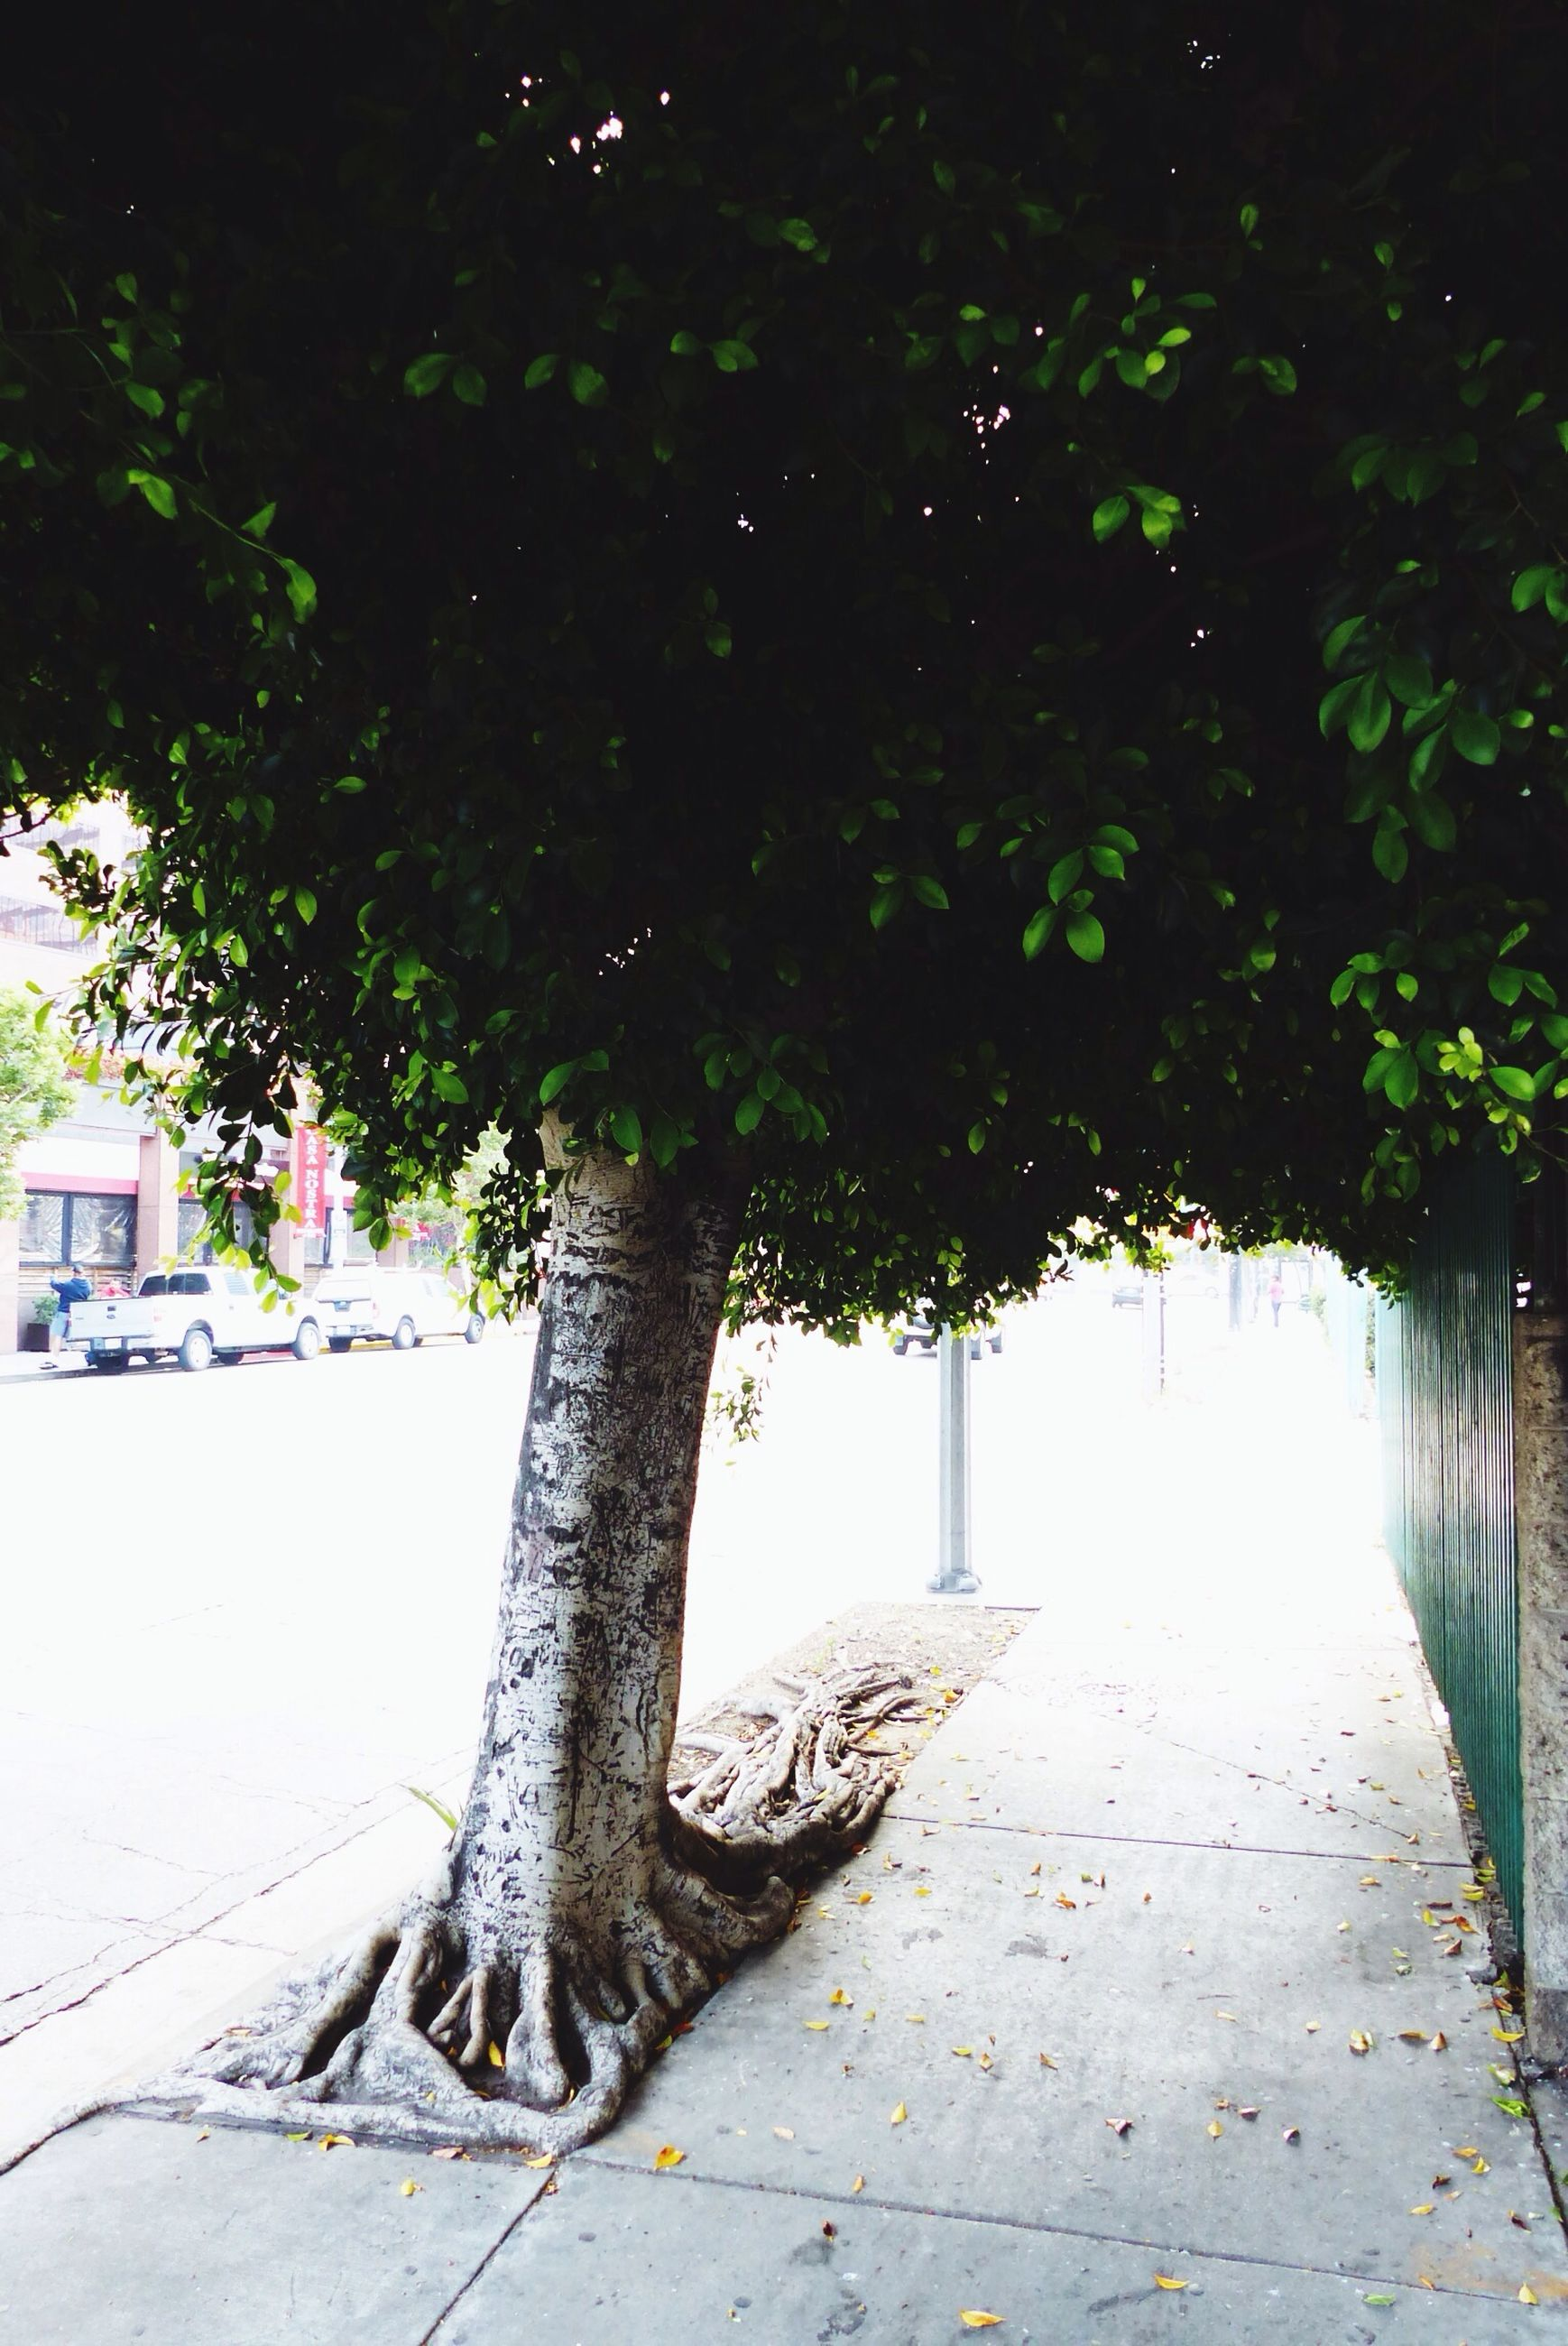 leaf, tree, footpath, plant, growth, sidewalk, cobblestone, shadow, outdoors, sunlight, nature, bench, street, day, no people, built structure, the way forward, pavement, wall - building feature, branch